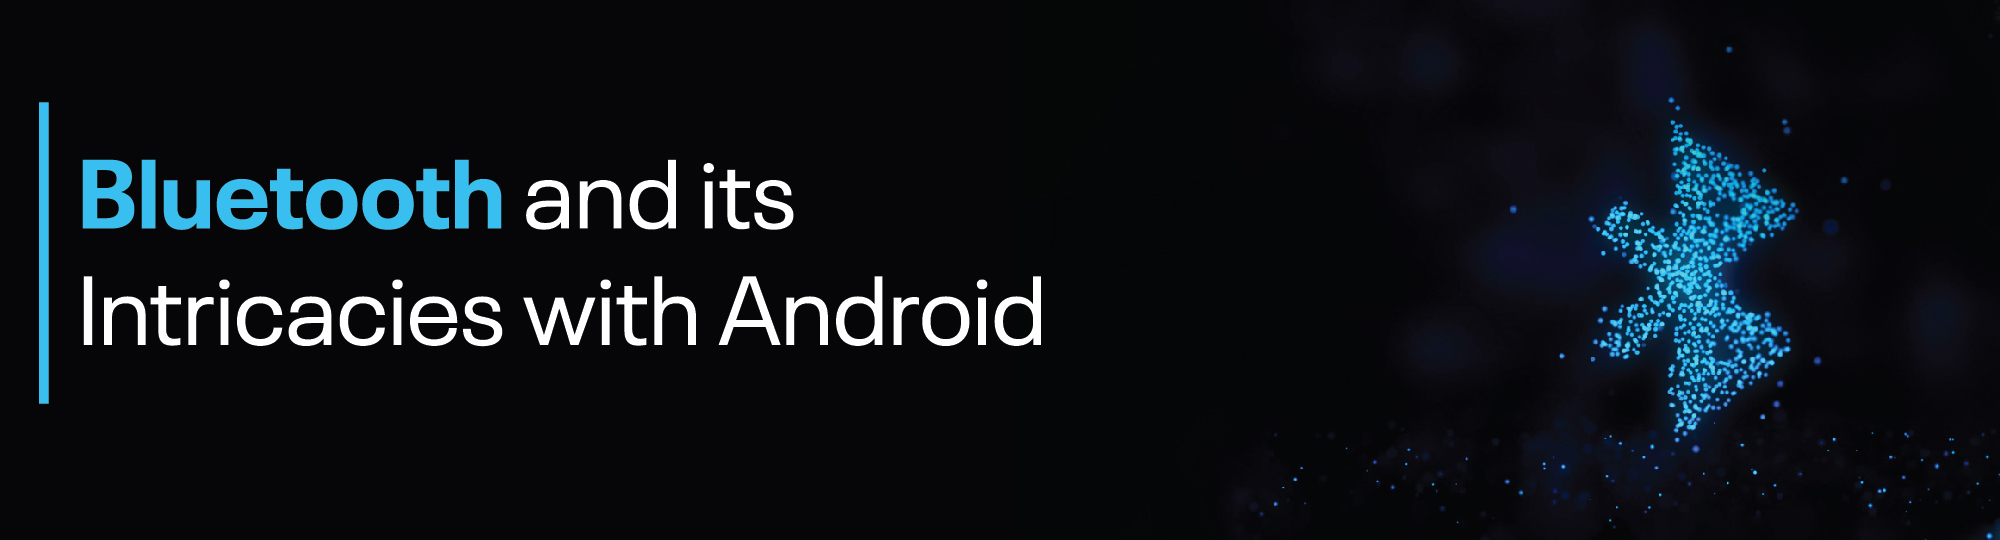 Bluetooth and Android